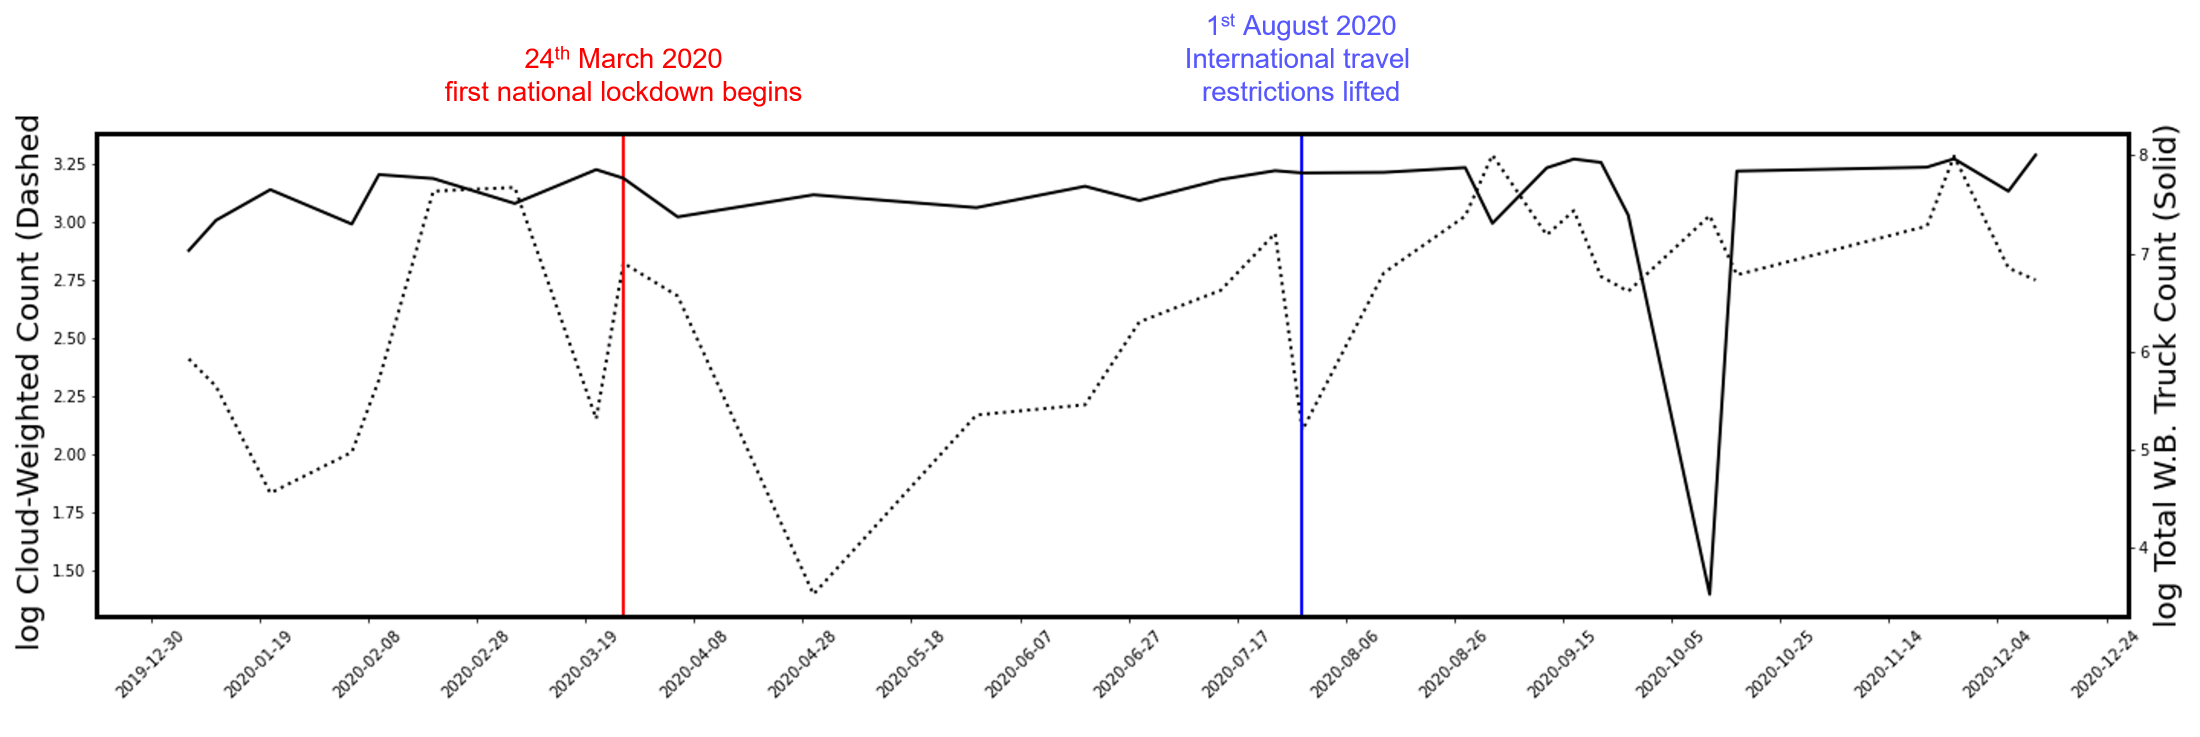 Line chart showing the dates of lockdowns and restriction easings coinciding with drops and rise in predicted cloud-weighted truck counts for 100km stretches of motorway outside of Mombasa, Kenya.